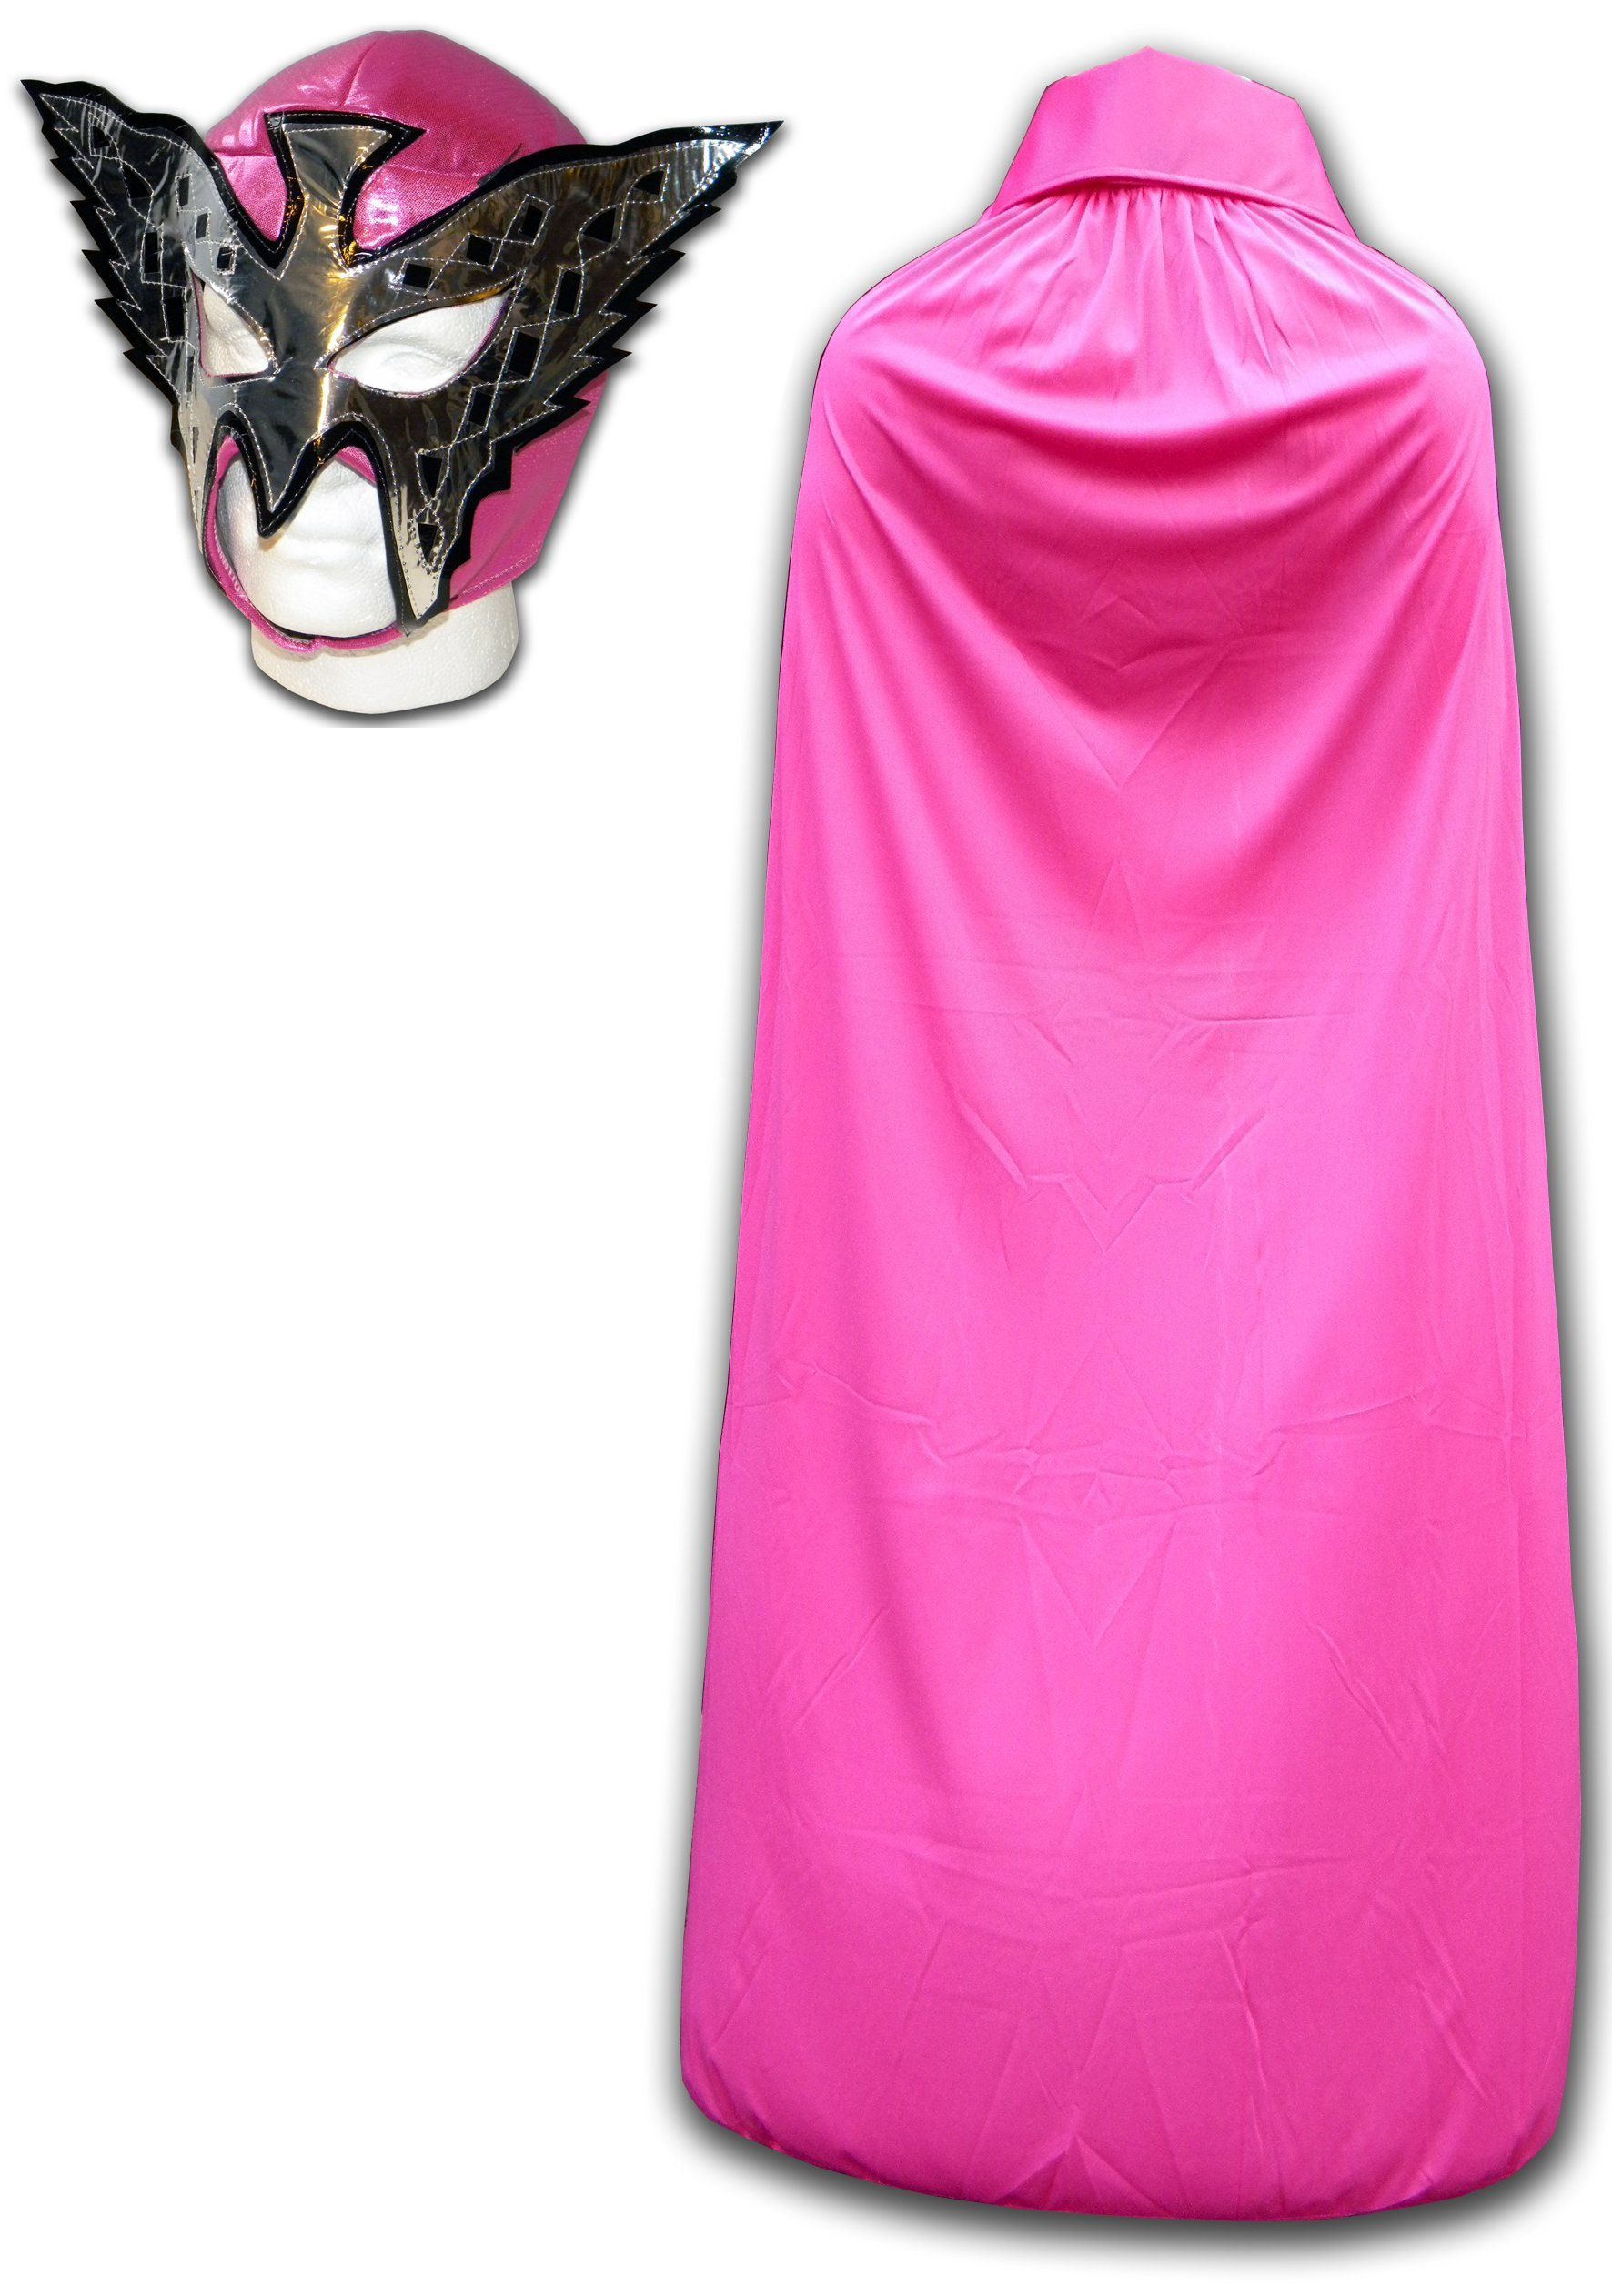 Luchadora Men's Princess Wrestling Outfit Mask And Cape One Size Pink